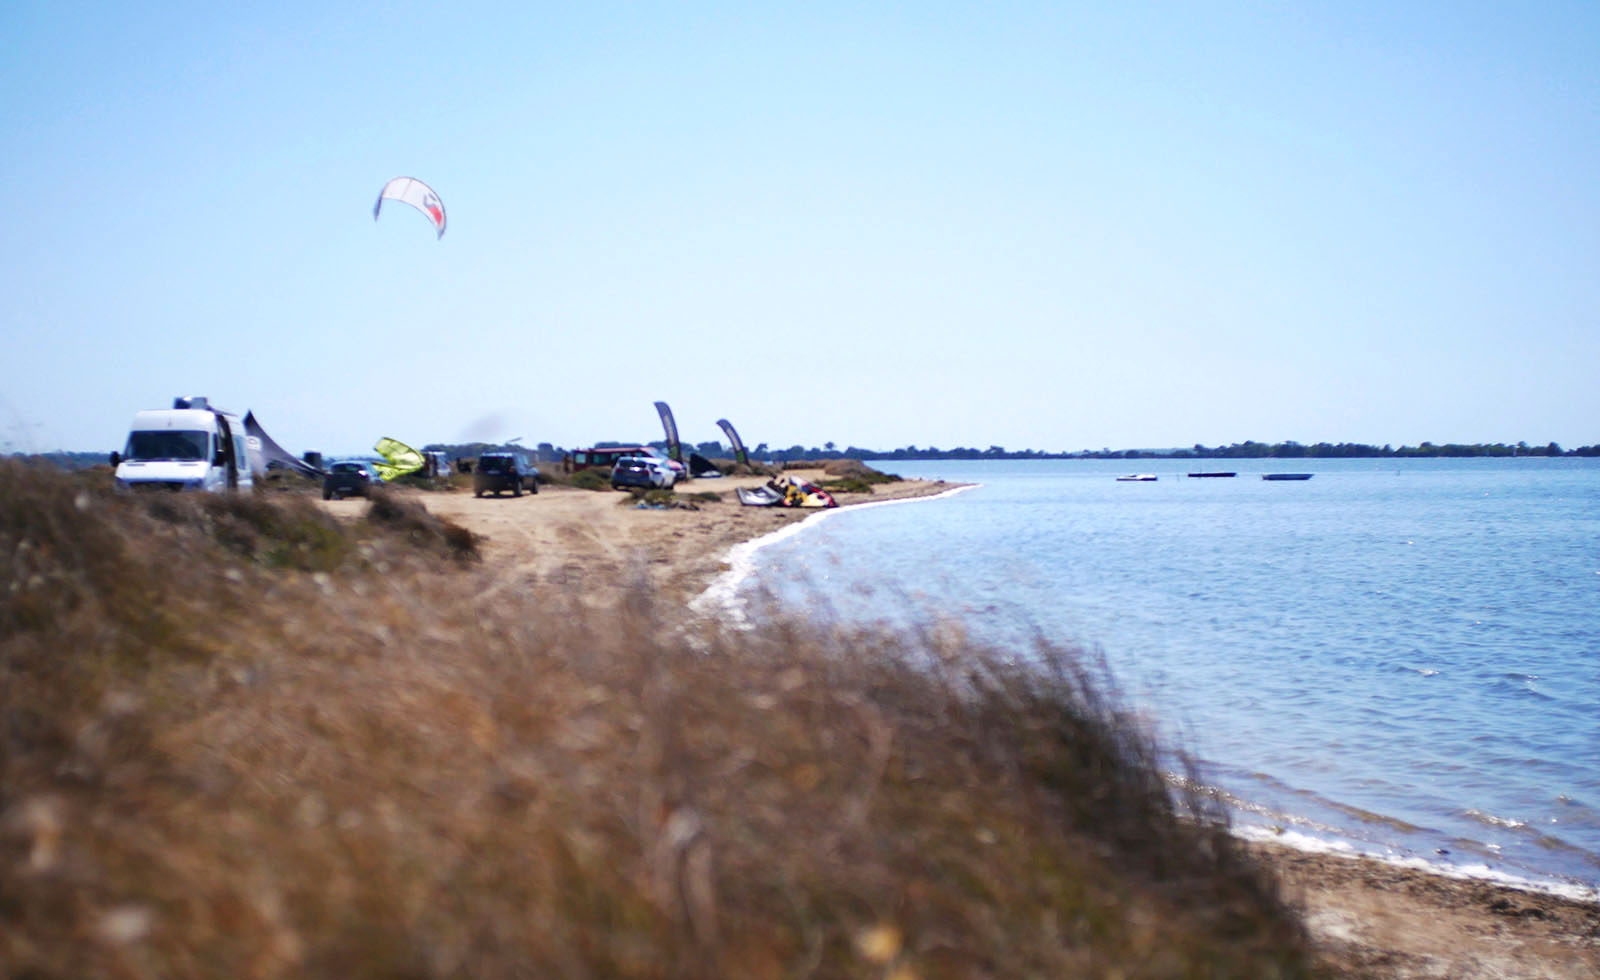 Kite centres on the beach, North side of Lo Stagnone lagoon.